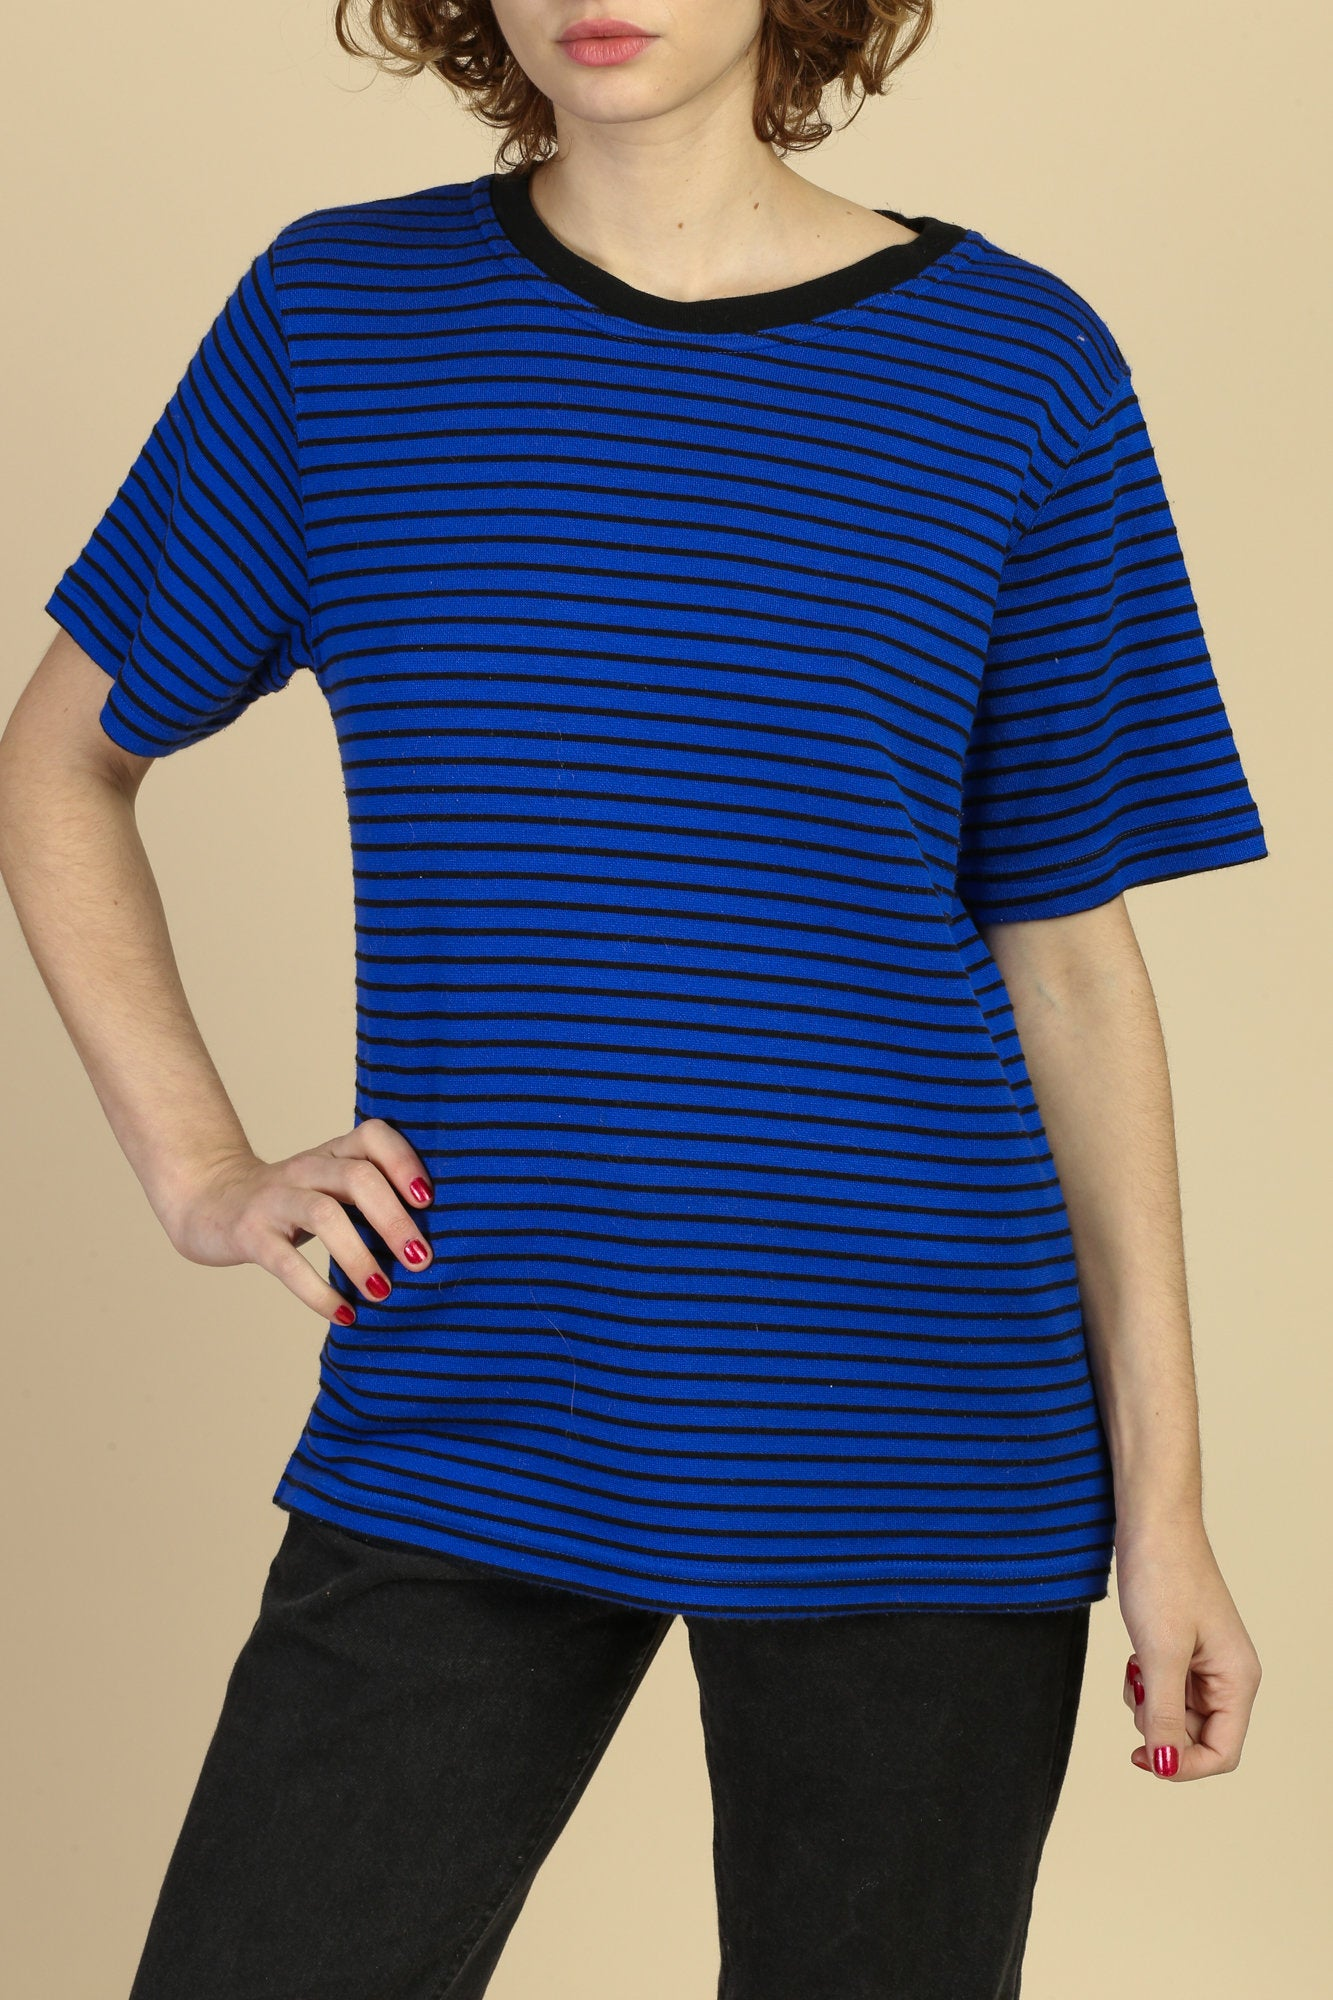 80s Electric Blue Striped Top - Large